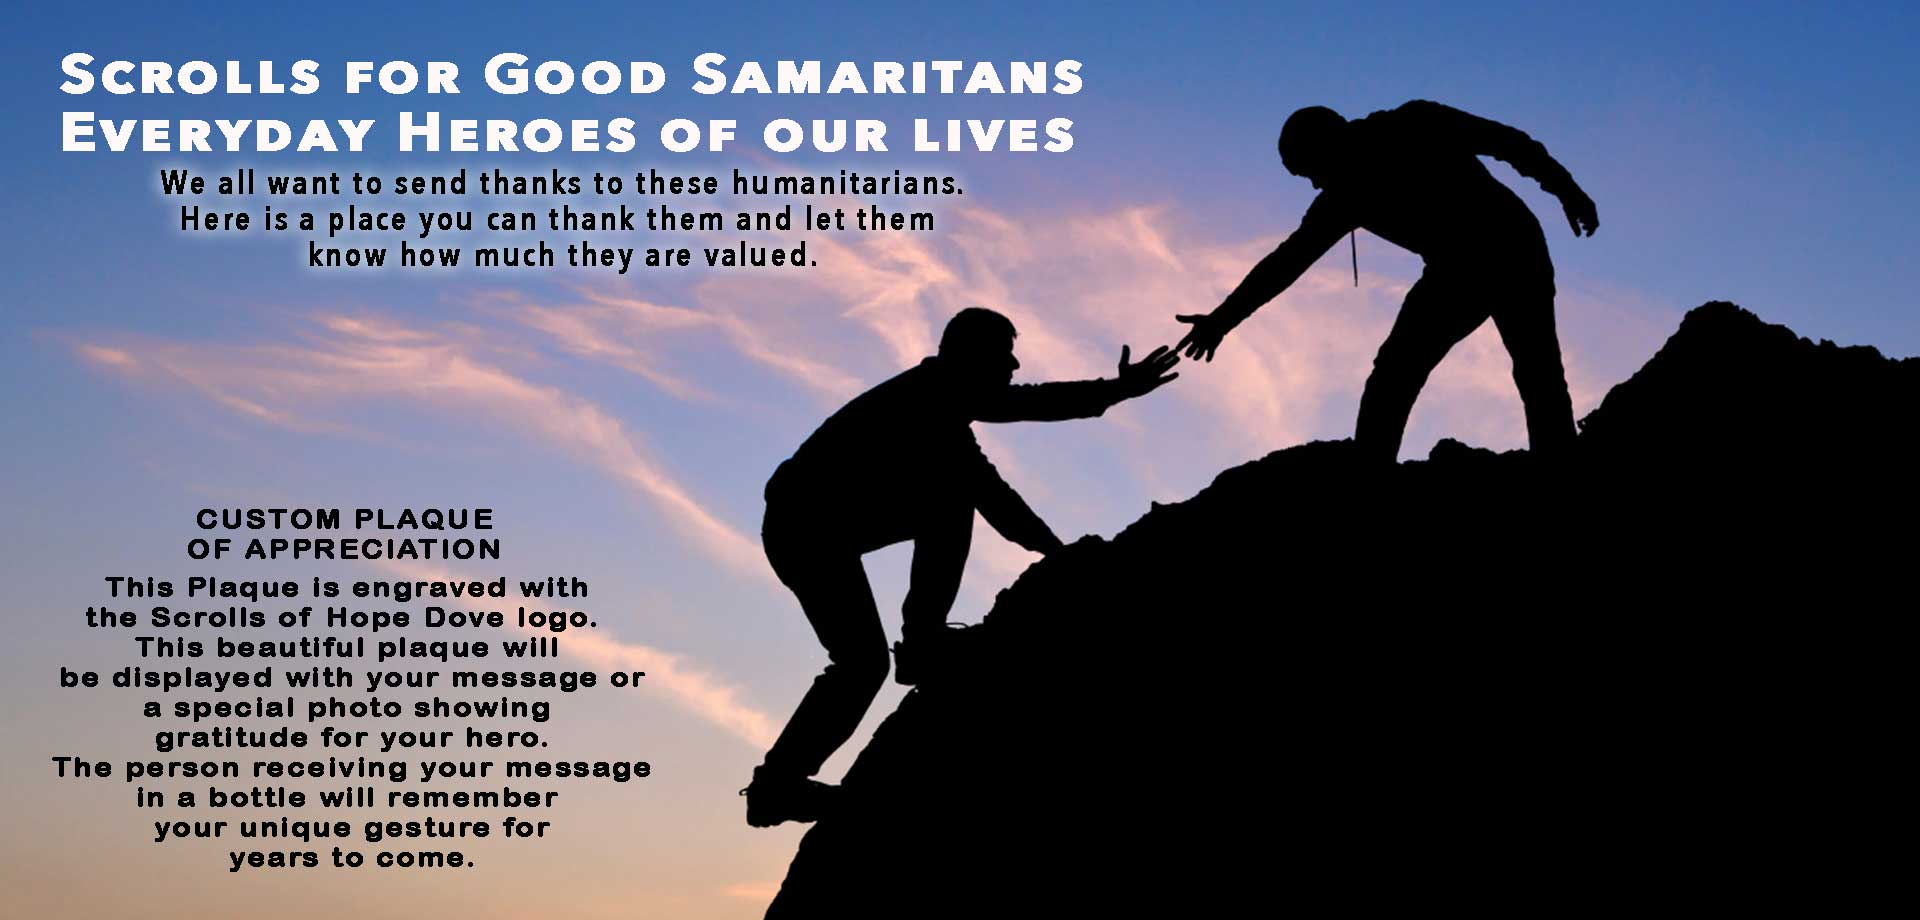 Scrolls for Good Samaritans